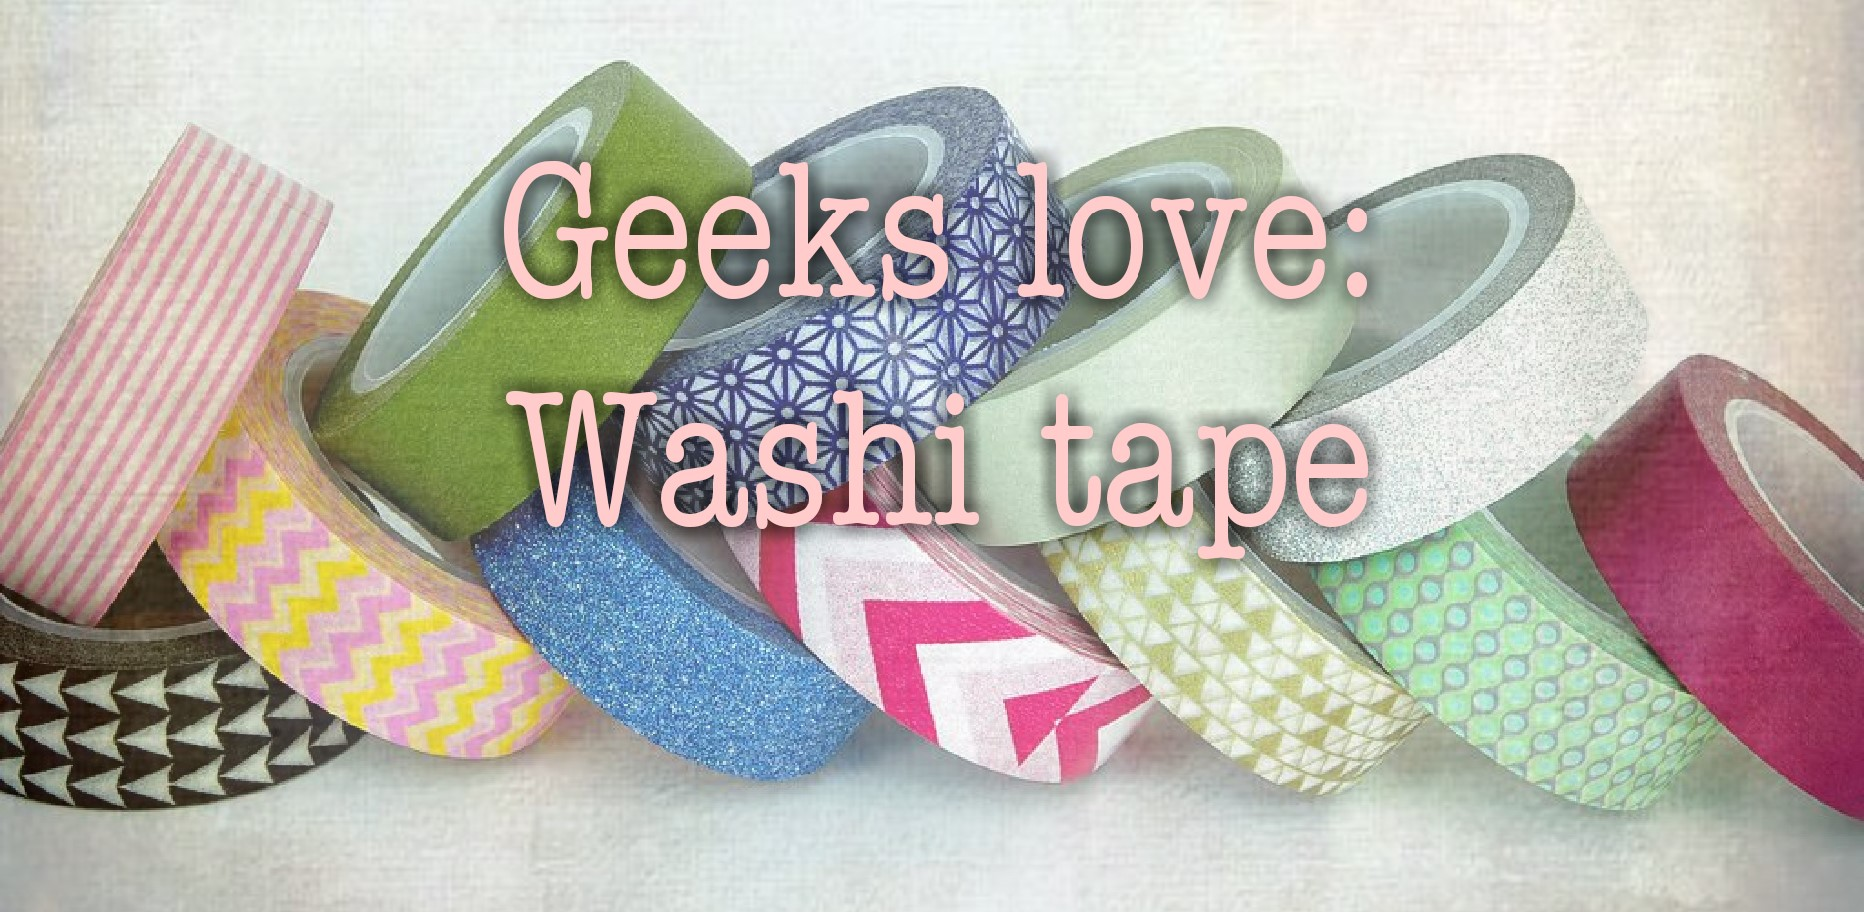 washi tape wikimedia commons